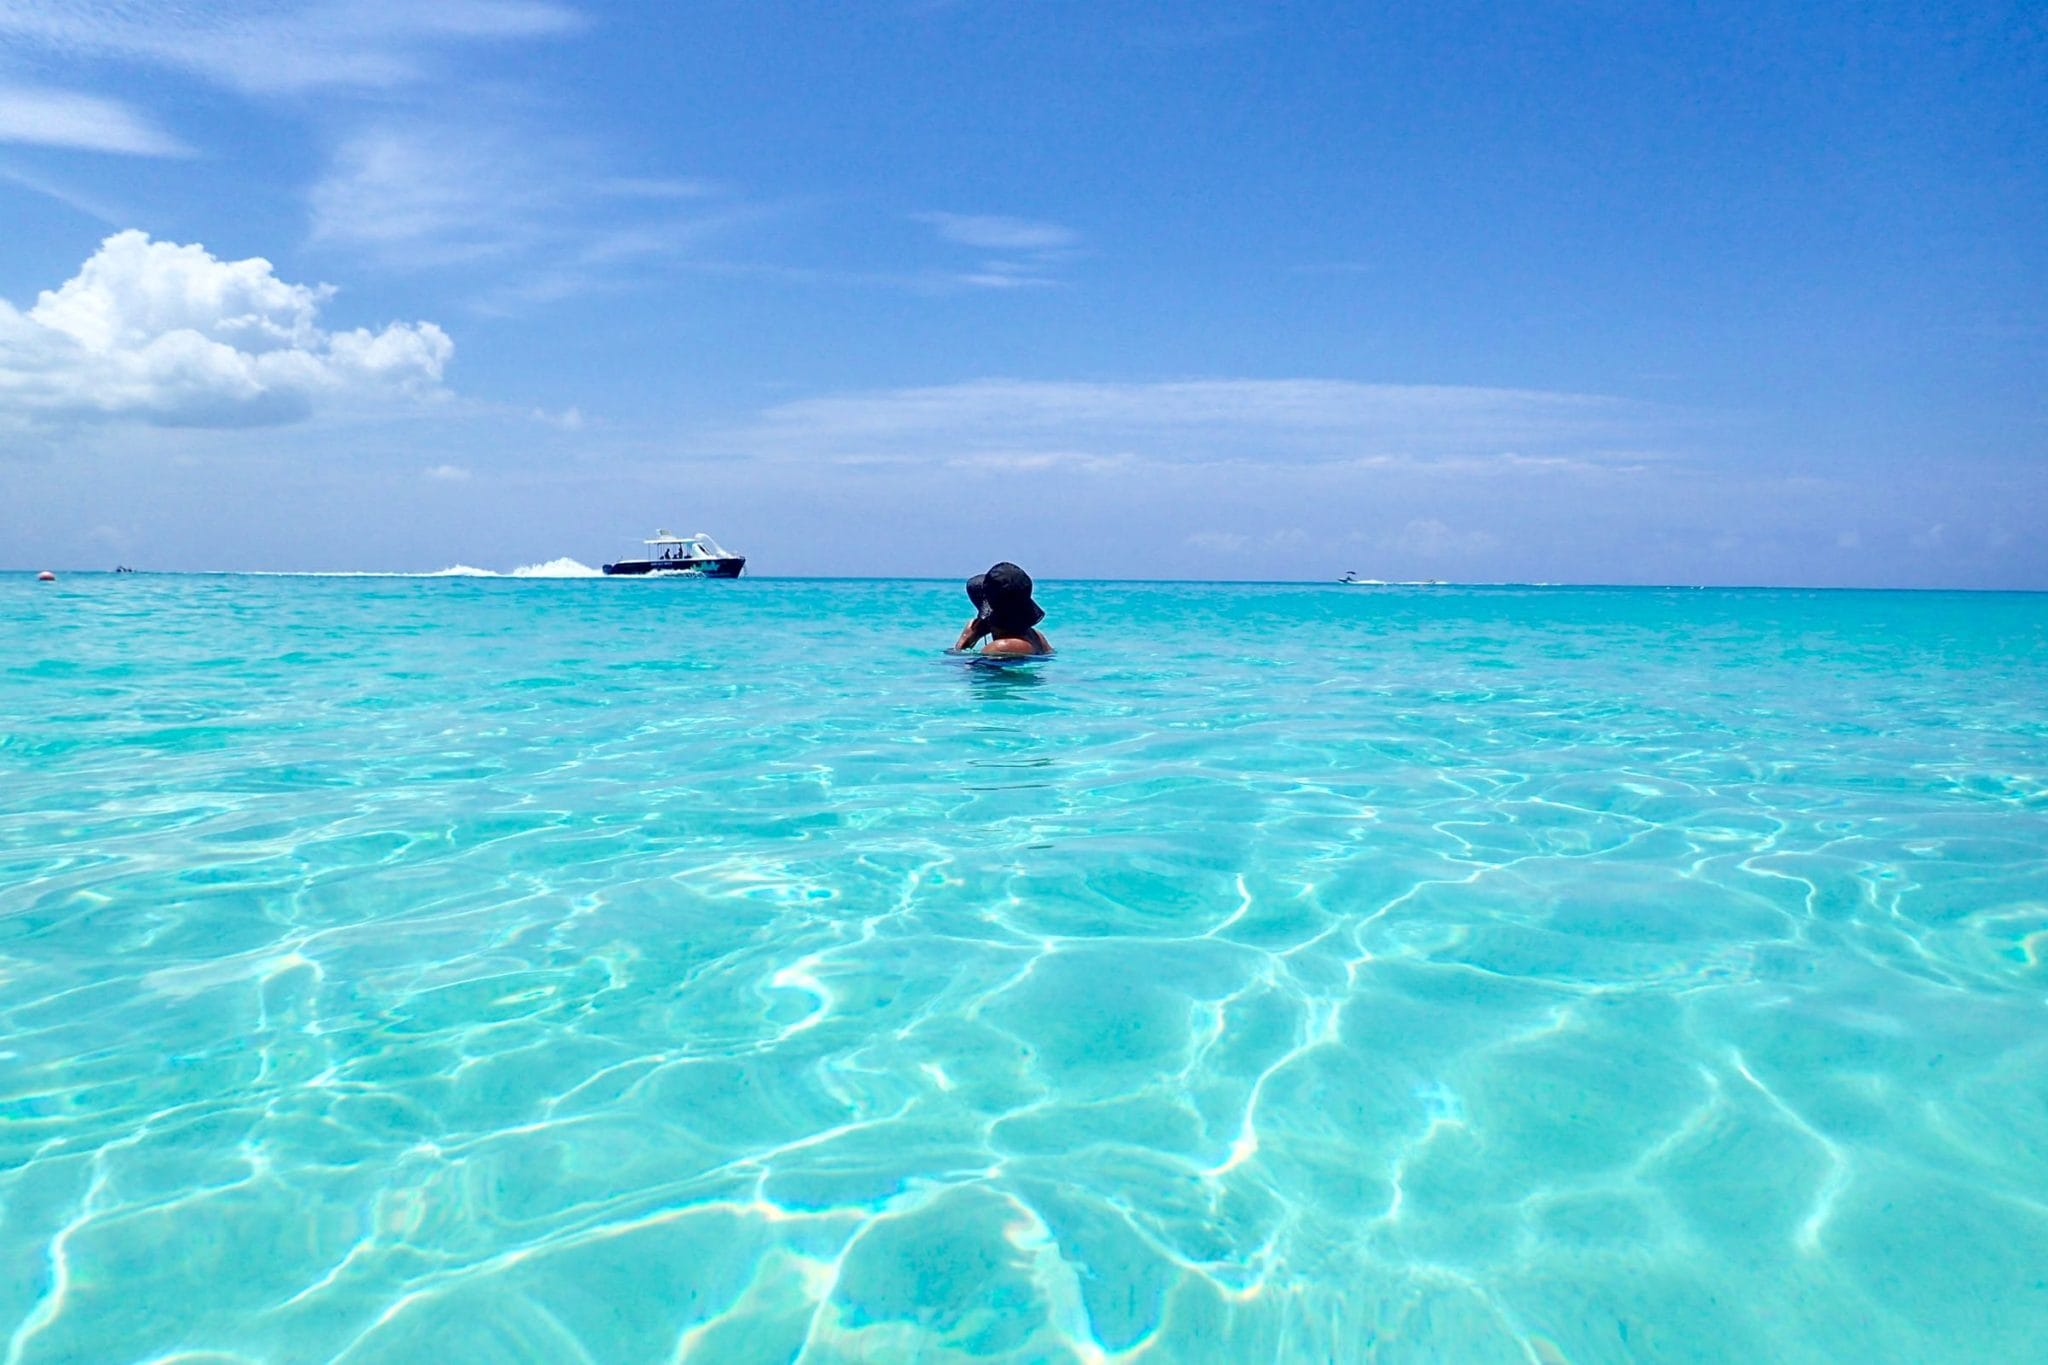 bobbing around grace bay, turks and caicos | providenciales, turks